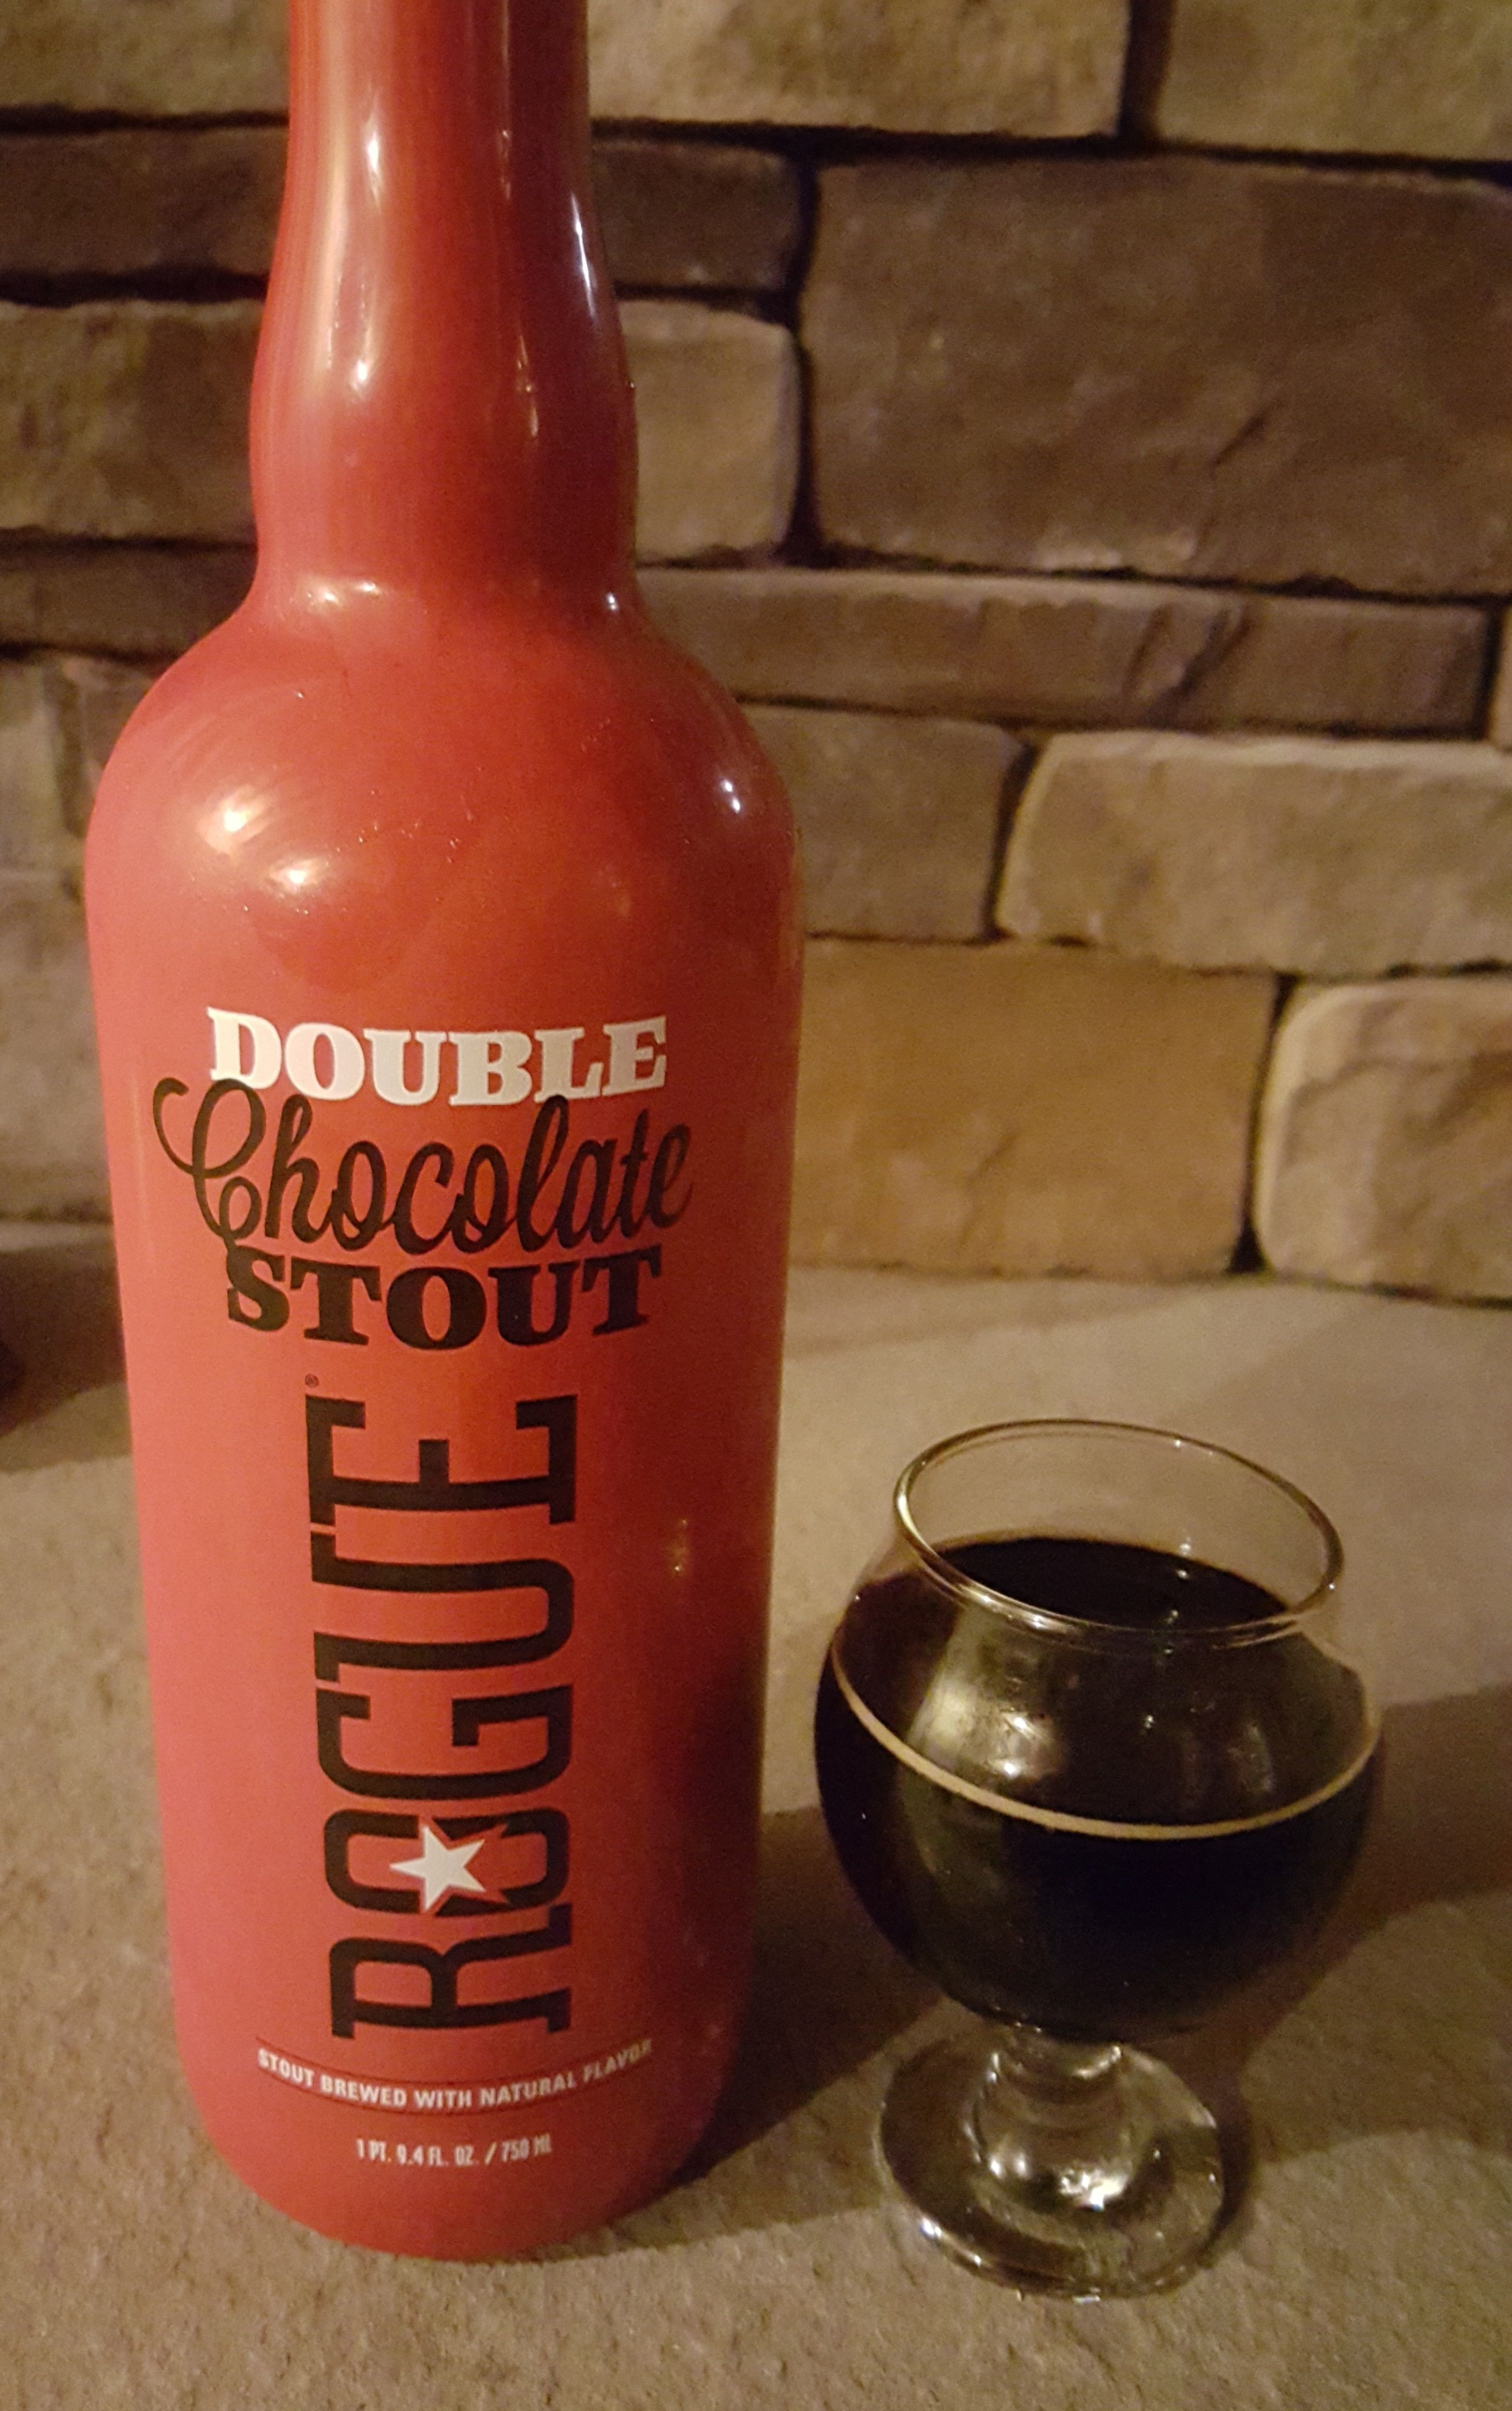 Rouge Double Chocolate ADI Stout Is 9 ABV And 50 IBU Appearance